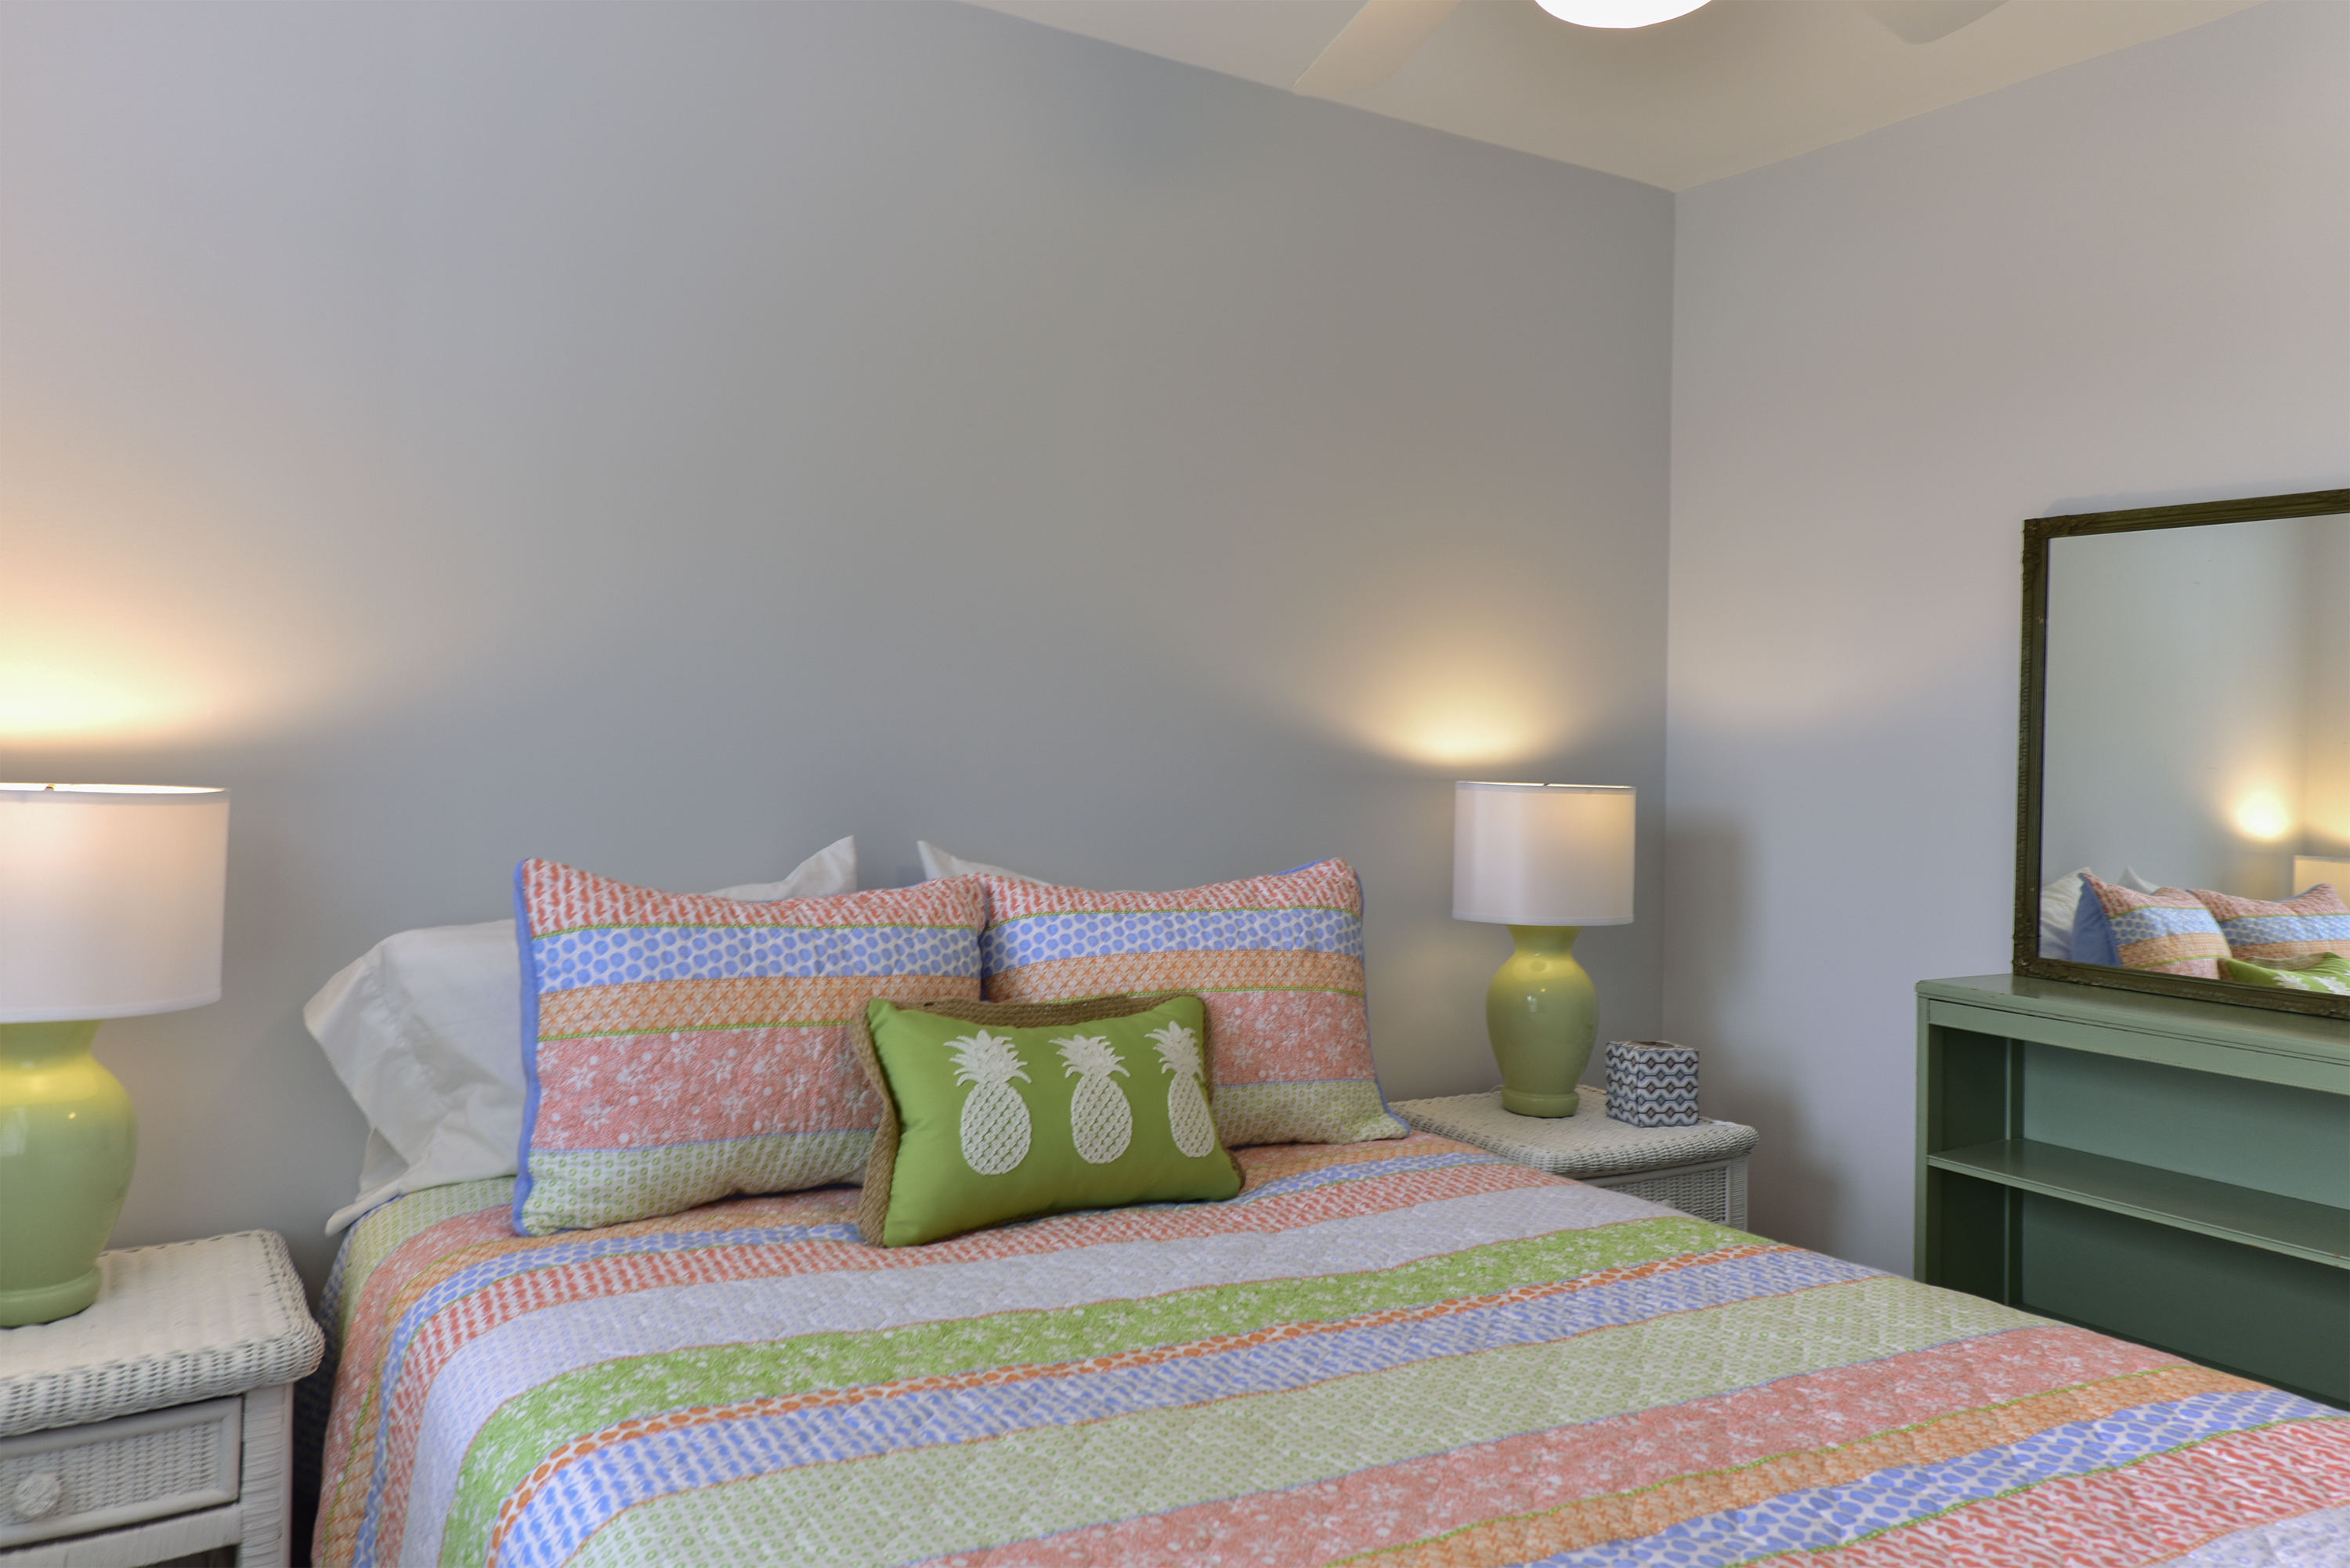 There are 2 guest bedrooms on the first floor.  The first has a queen size bed.